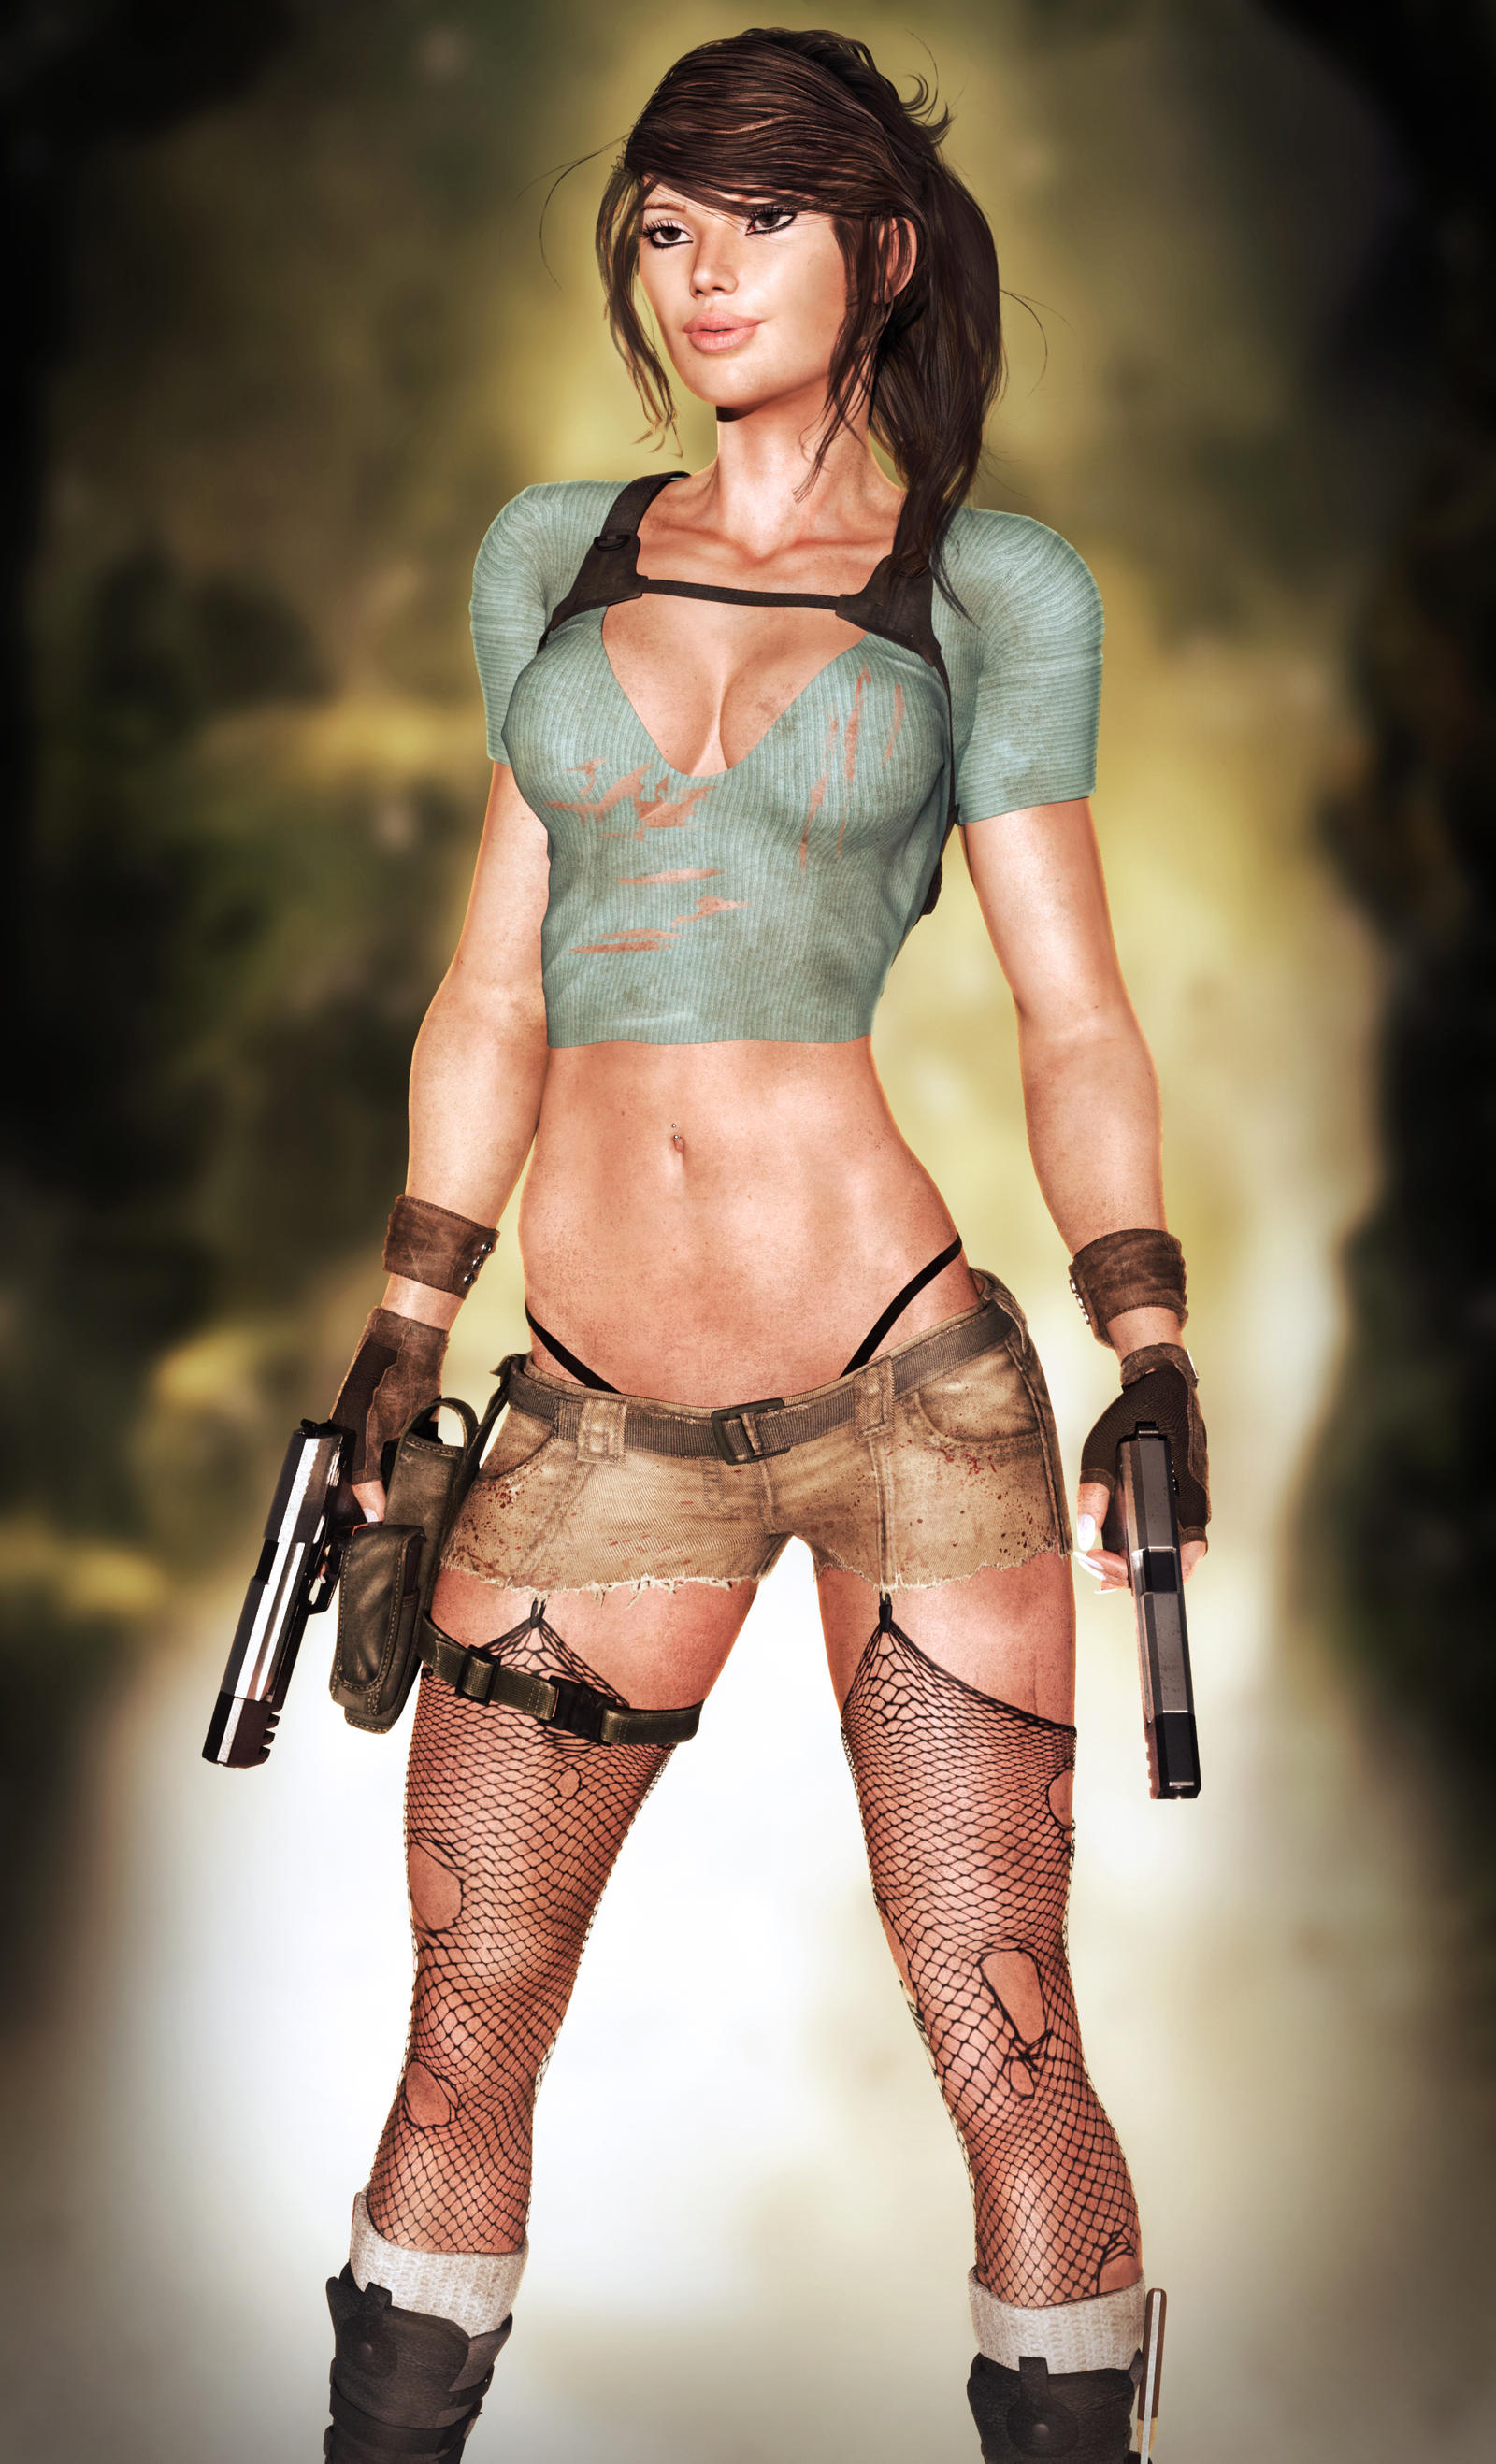 Photo lara croft pornographie nackt video